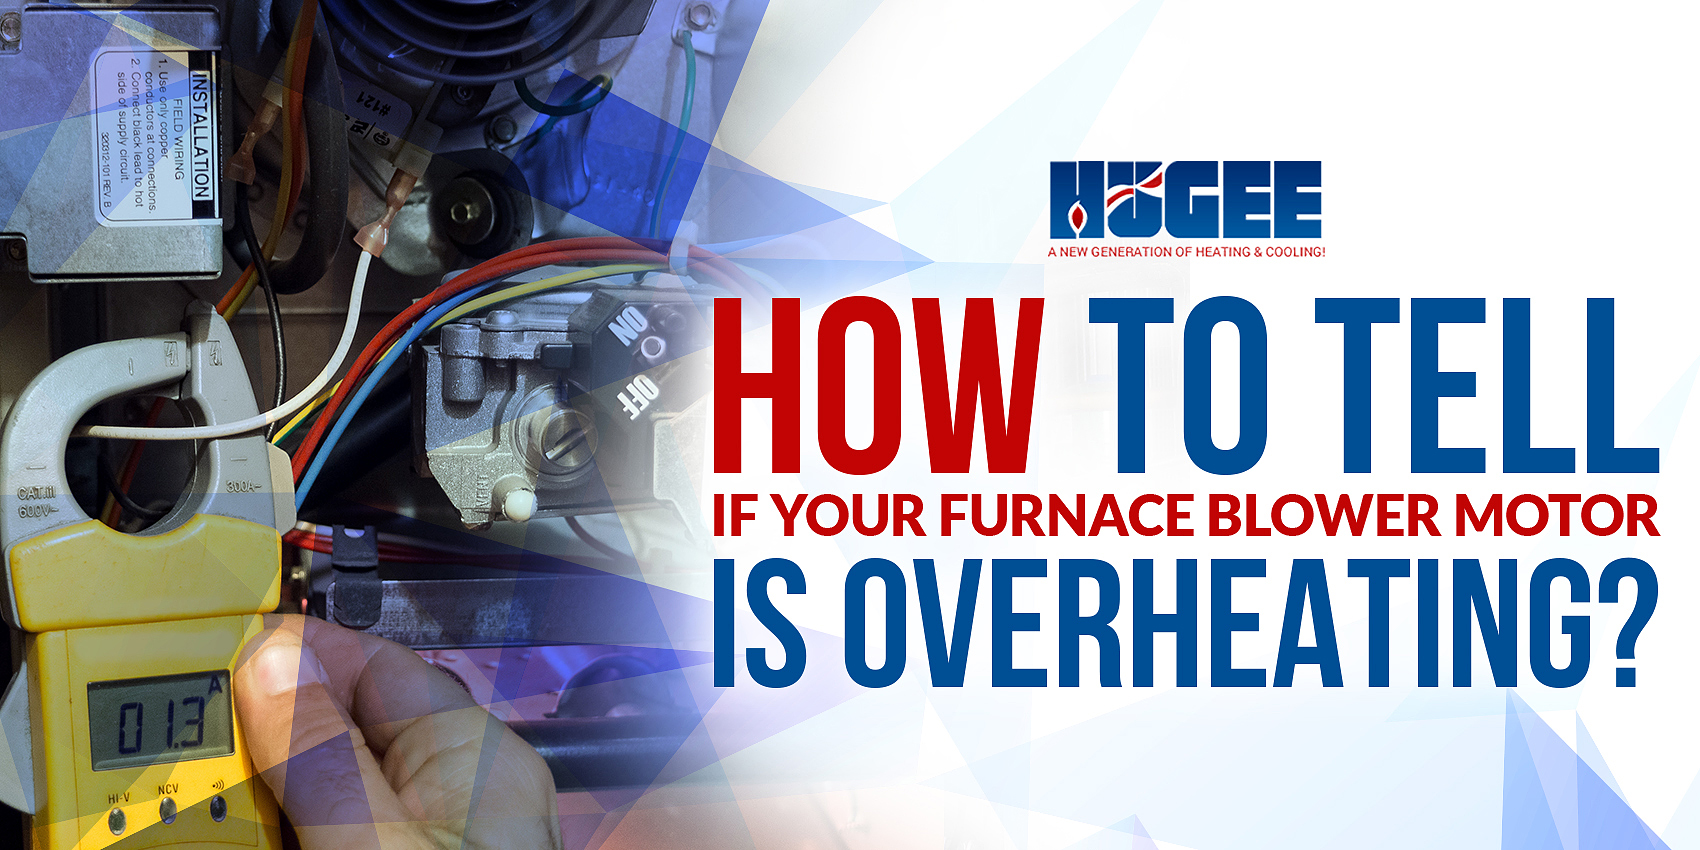 How To Tell If Your Furnace Blower Motor Is Overheating?